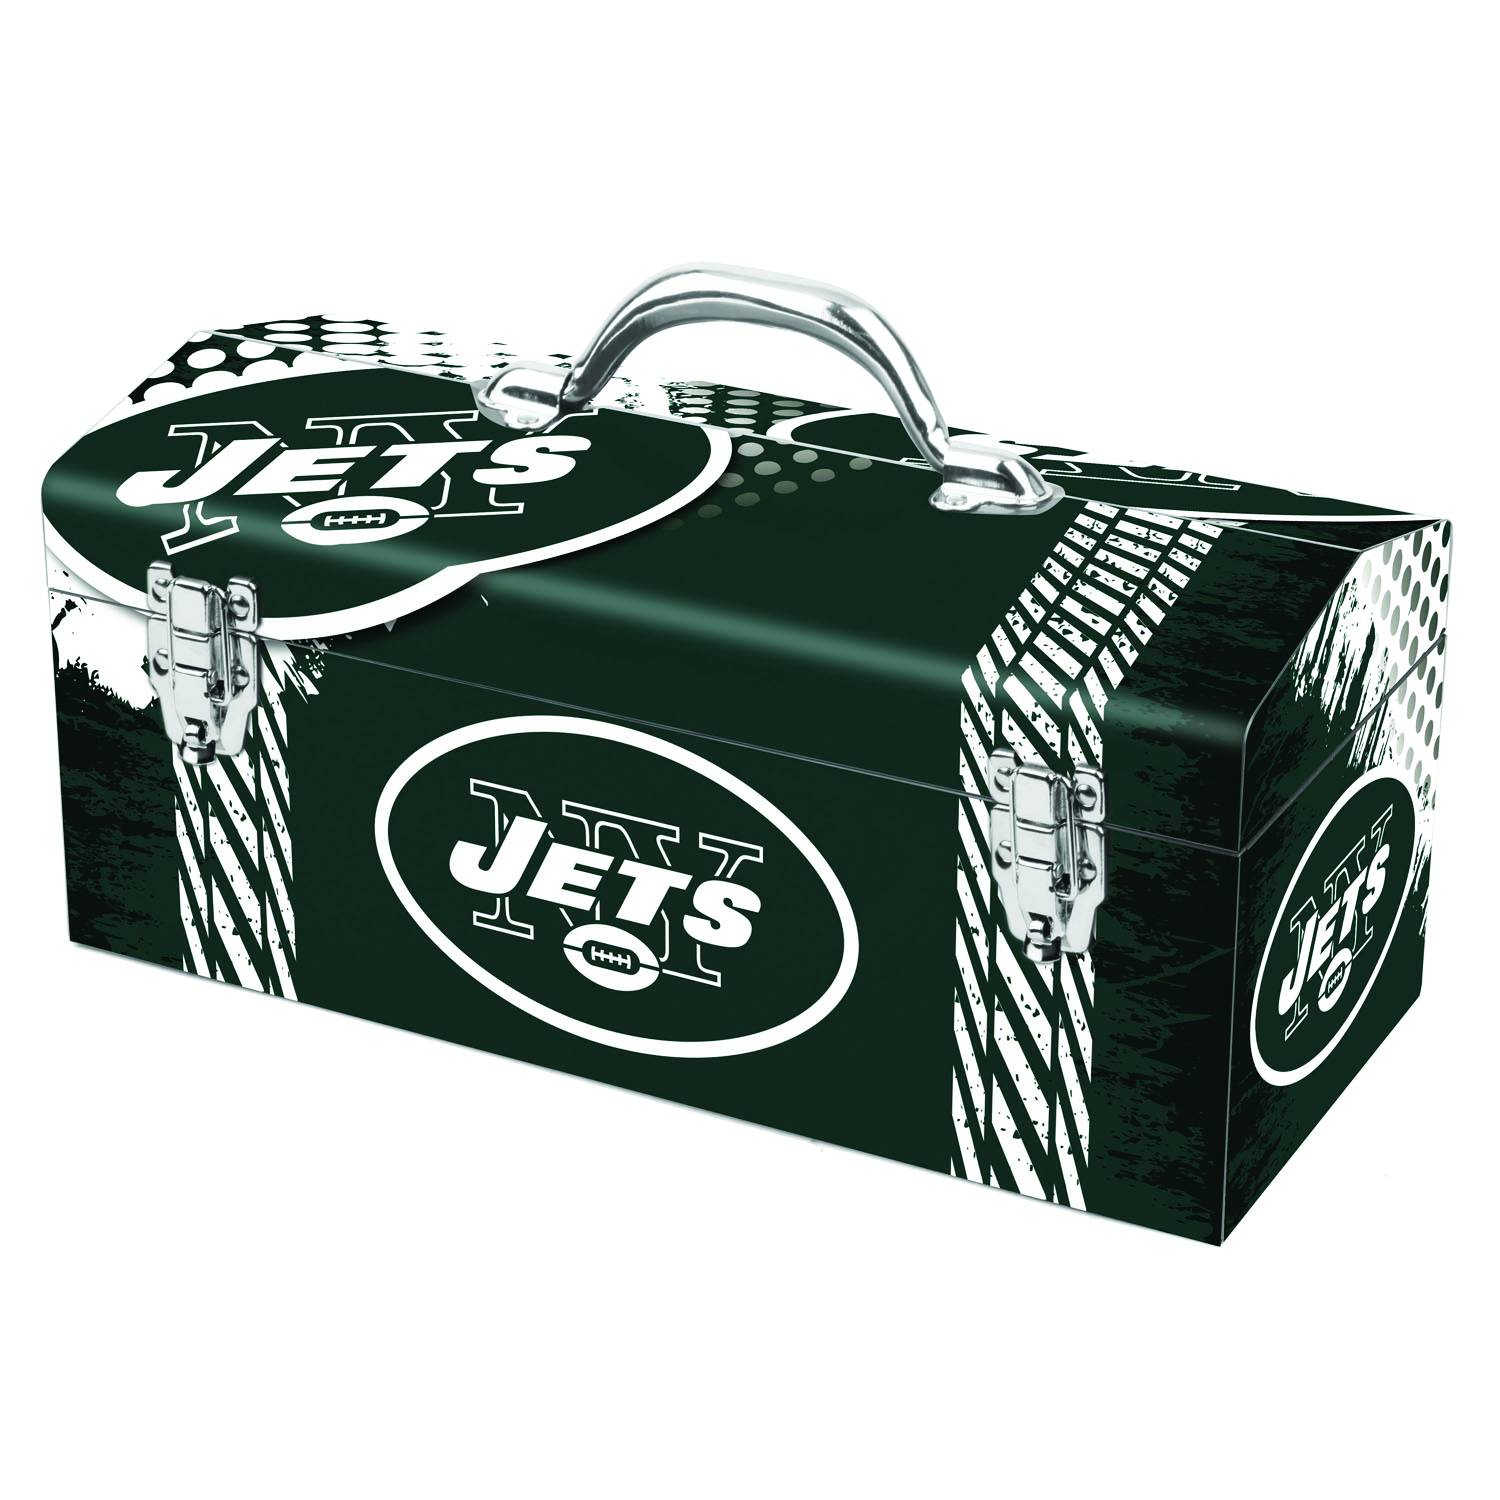 Sainty International  New York Jets  16.25 in. NFL  7.1 in. W x 7.75 in. H Art Deco Tool Box  Steel